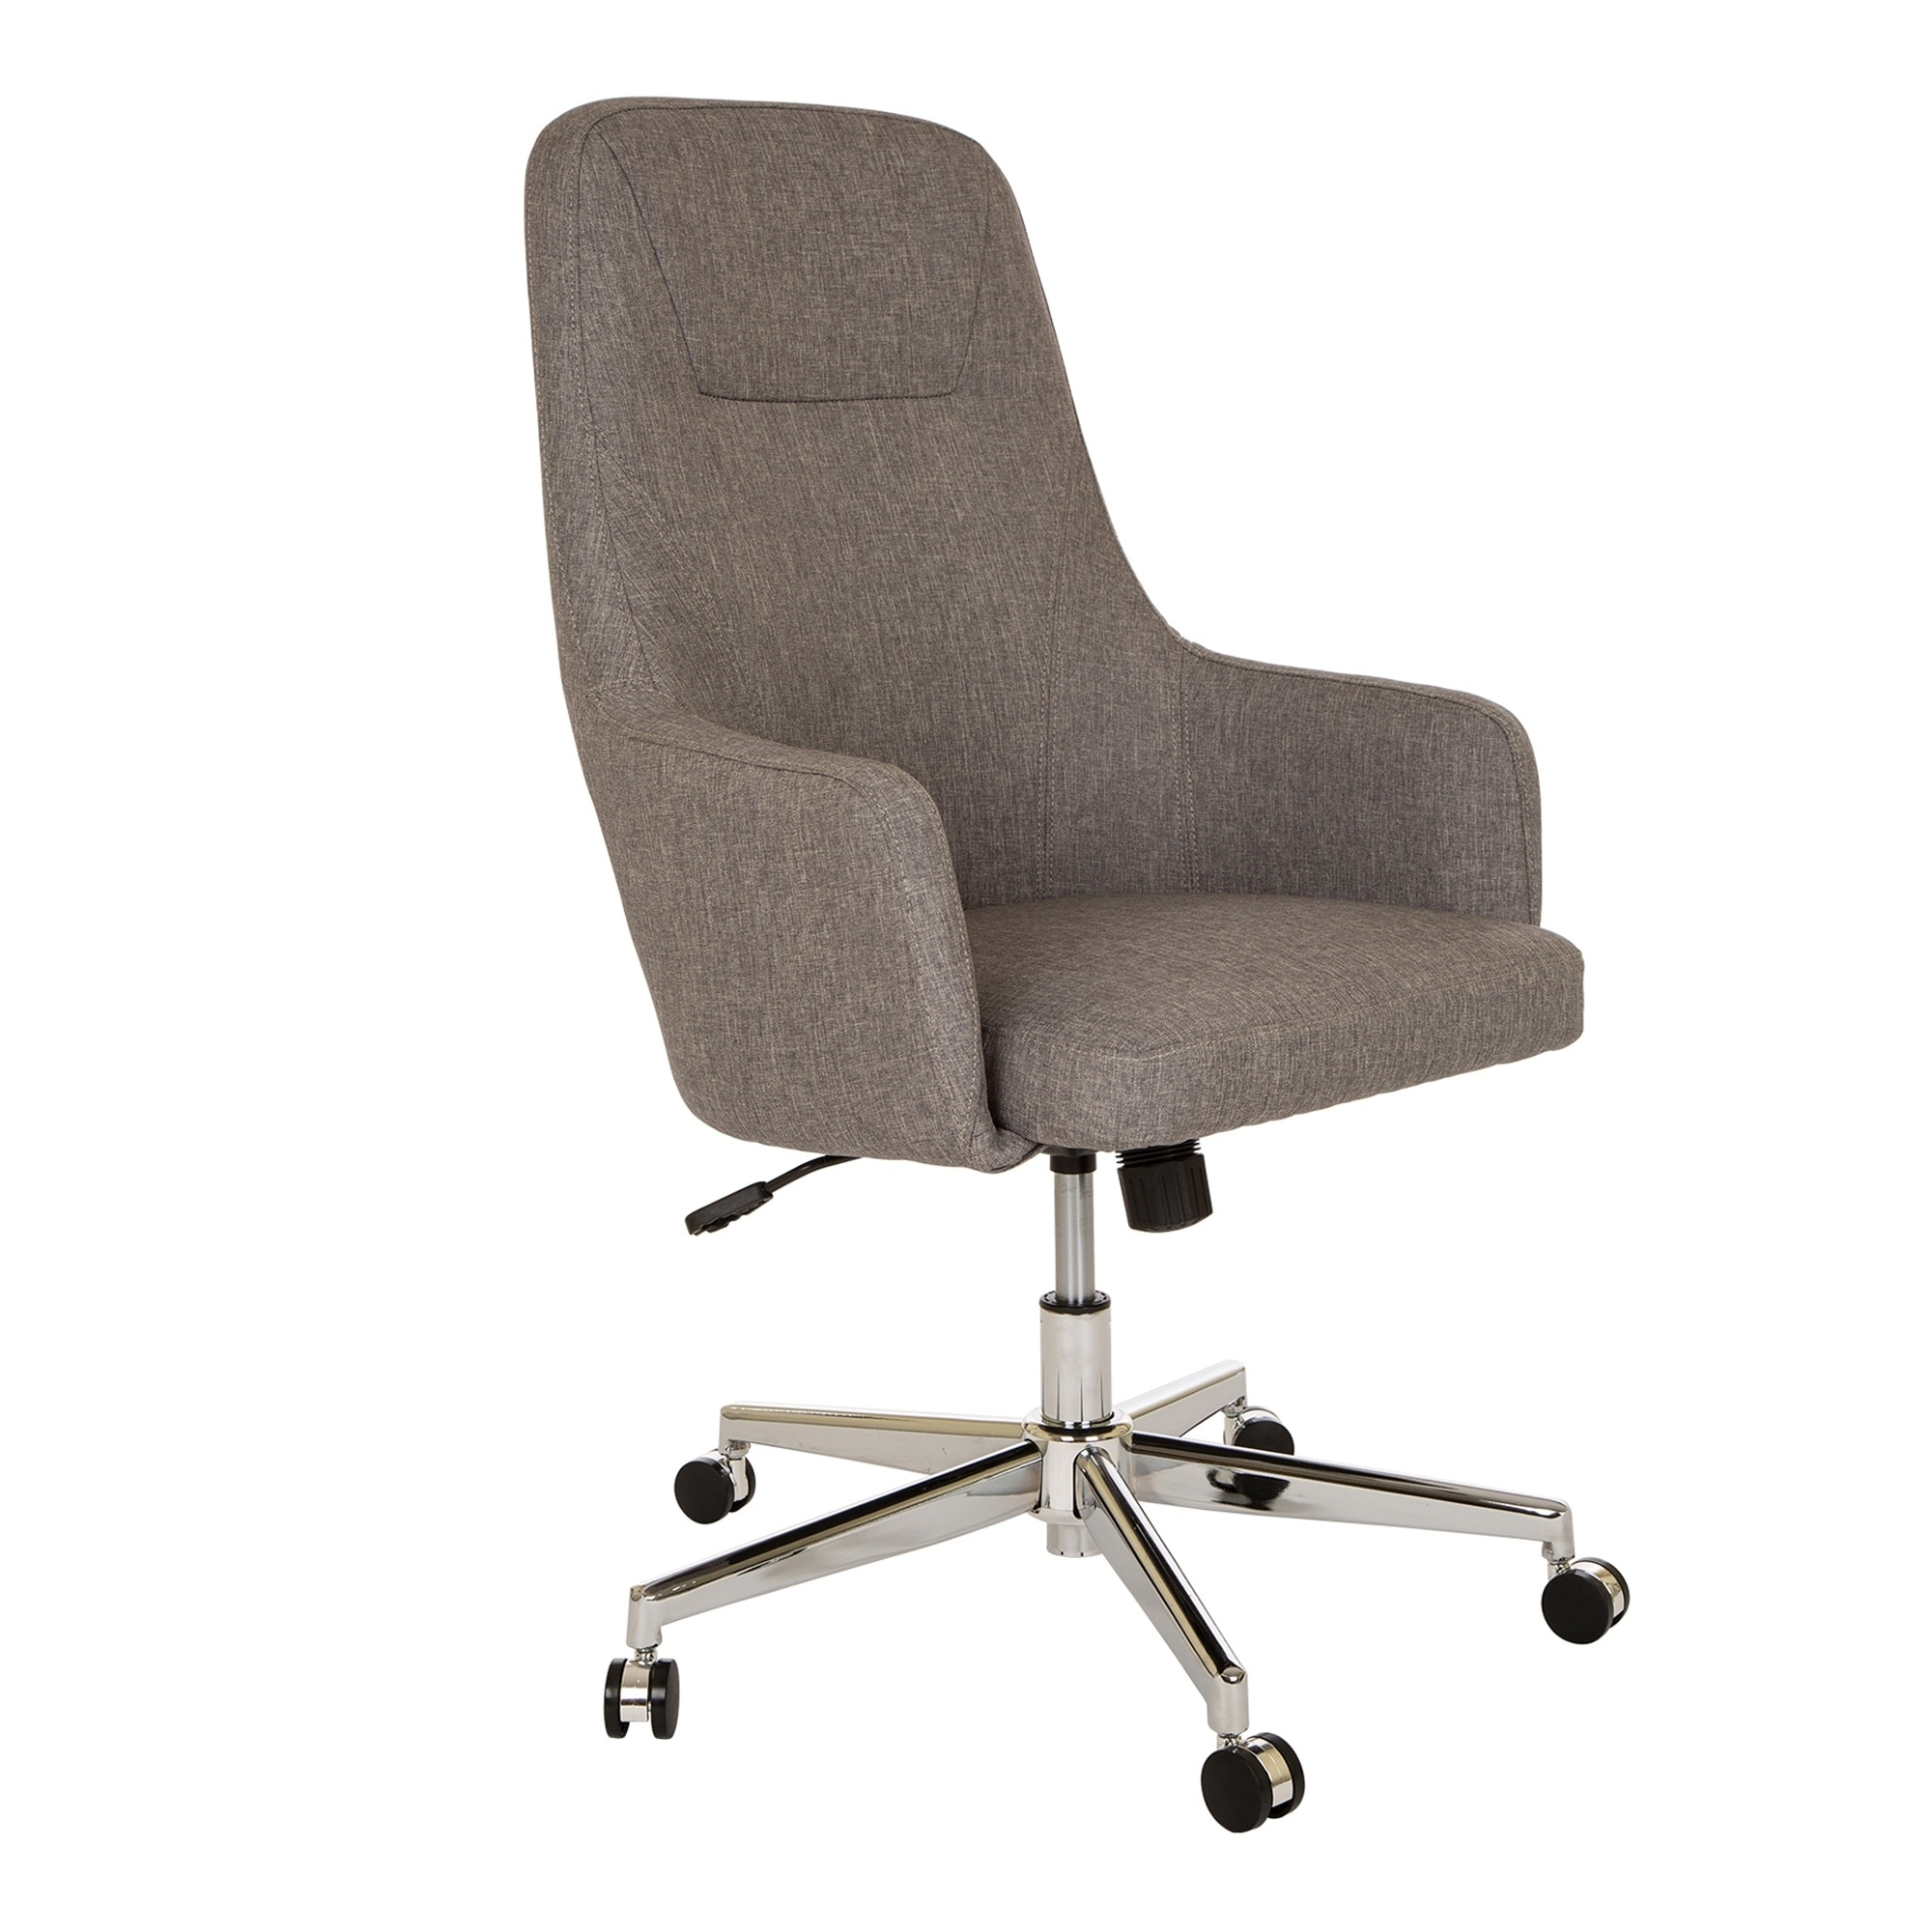 shop glitzhome mid-century modern adjustable office chair - on sale